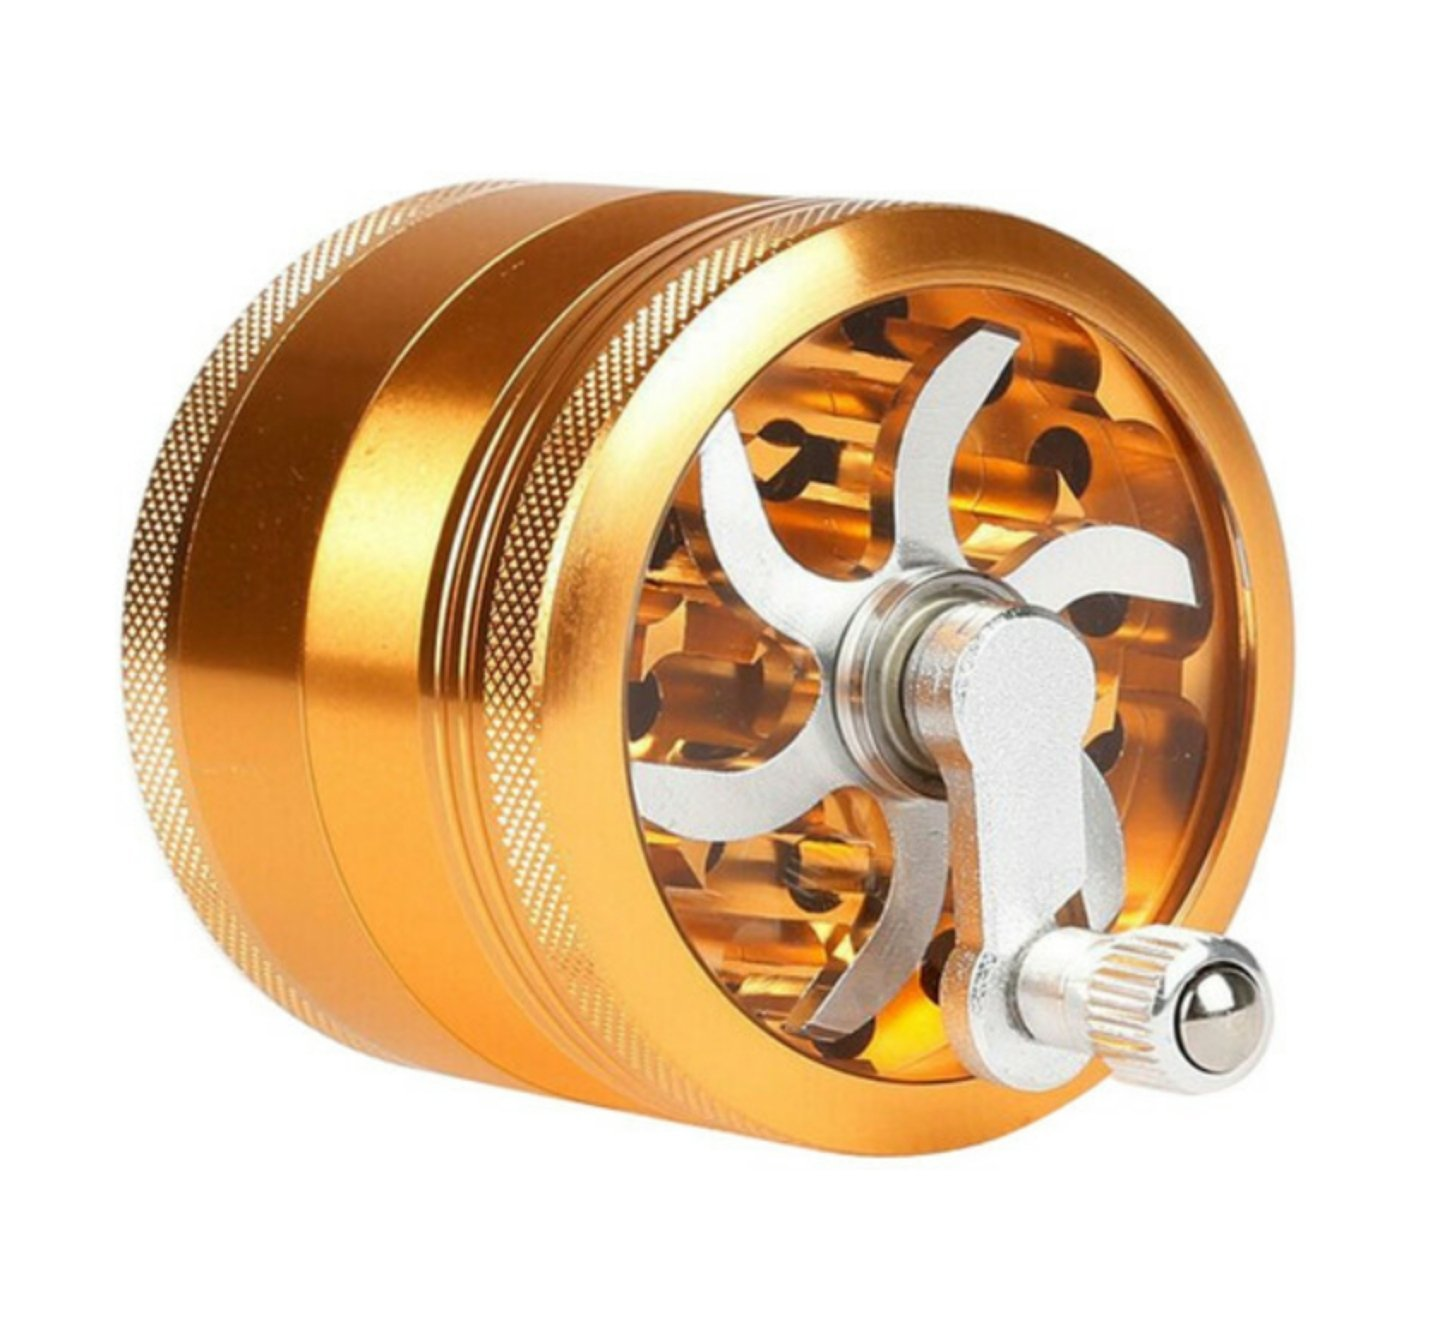 63mm Aluminium Alloy Grinder w/ 4 Chambers and Built-in Hand Crank - Burnt Mushroom